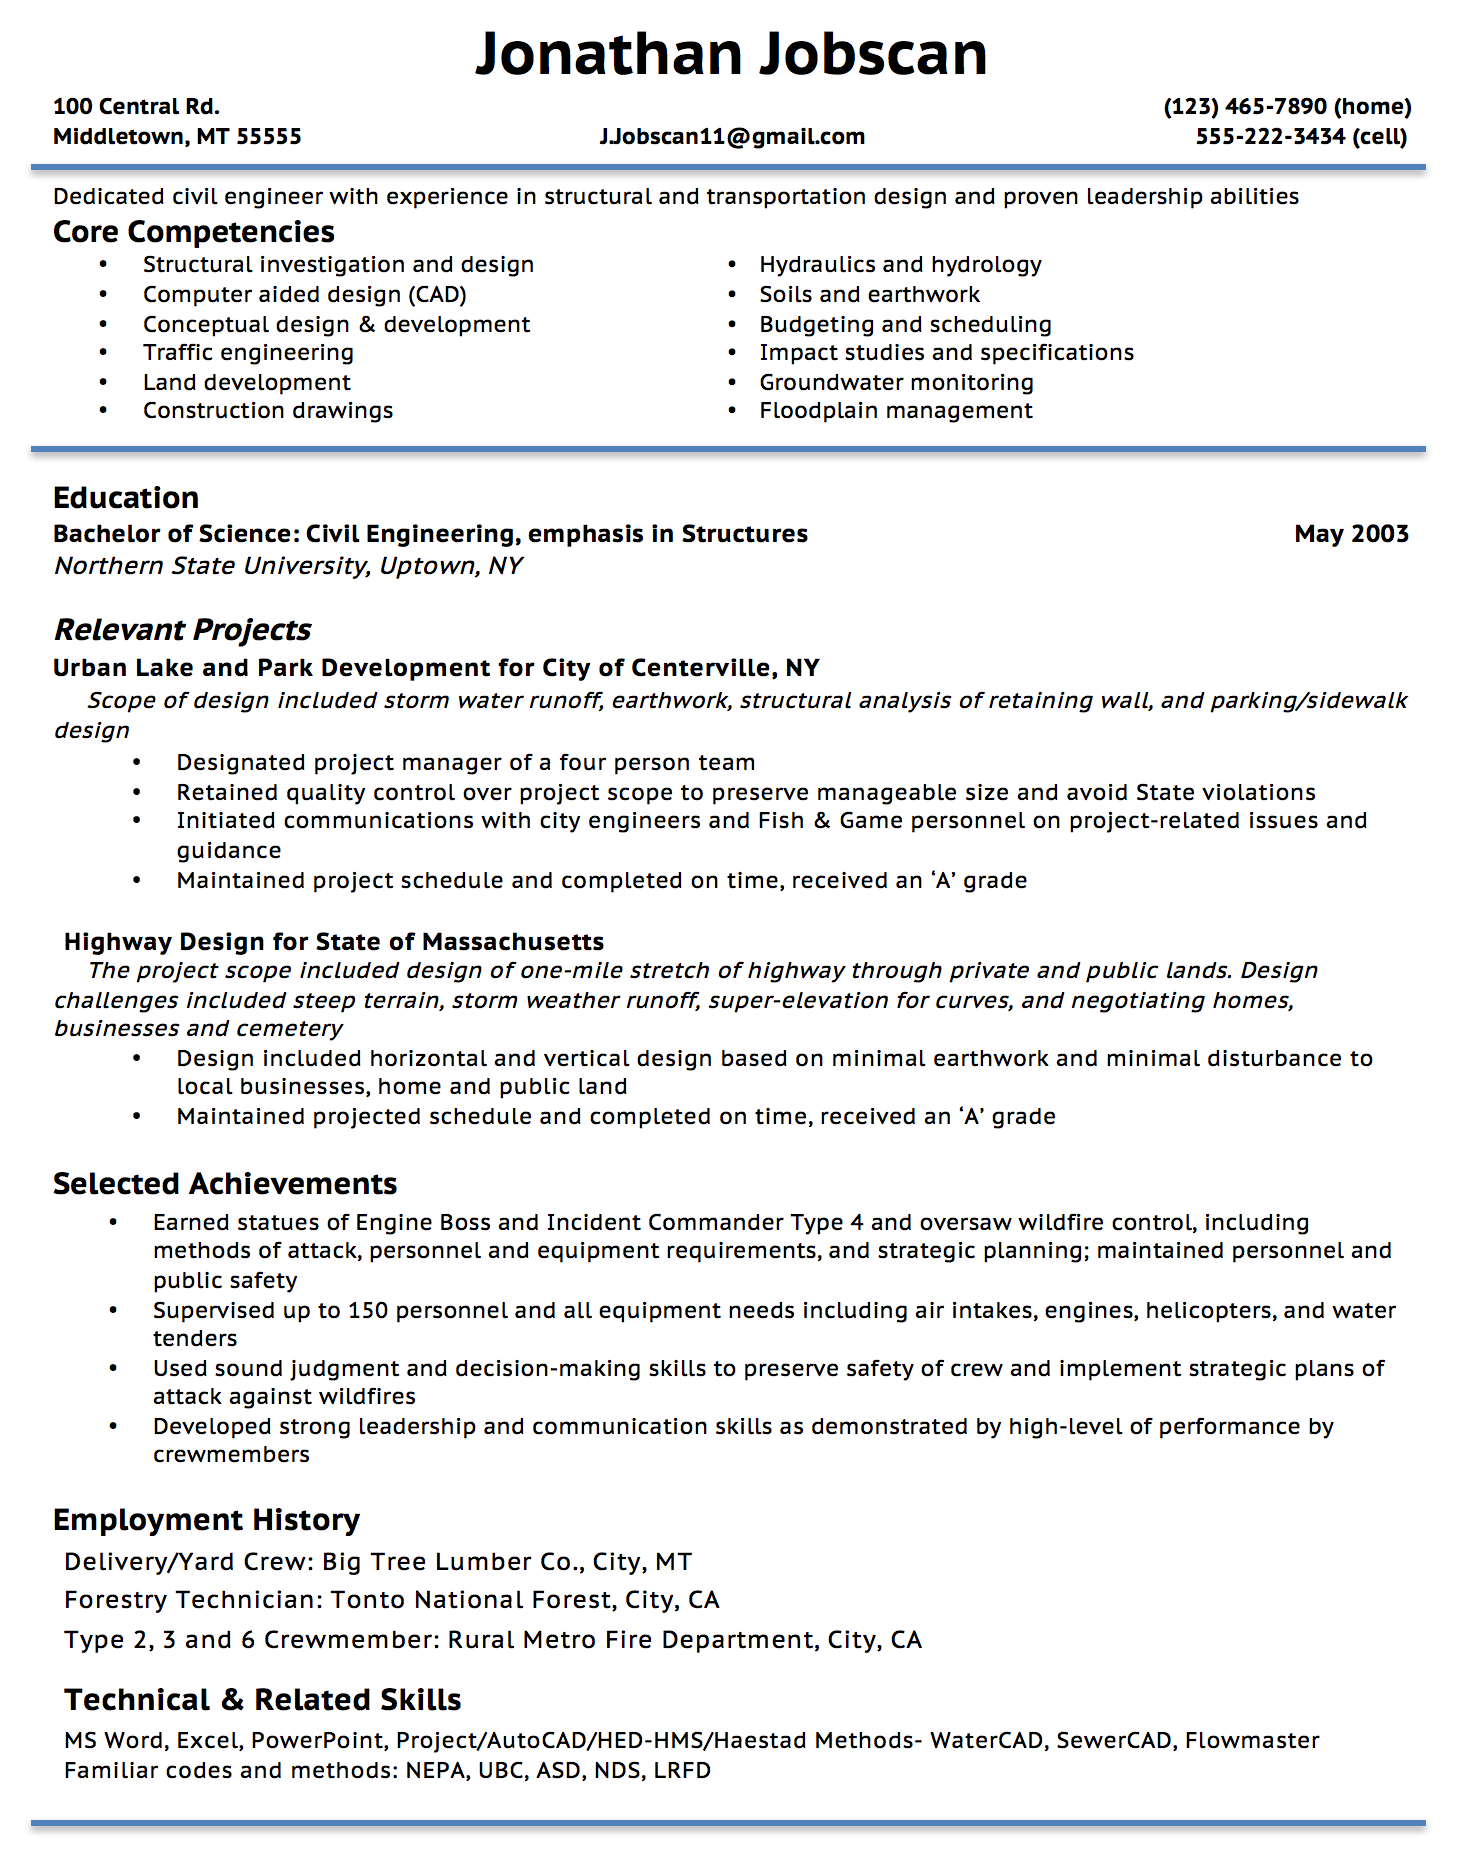 Opposenewapstandardsus  Prepossessing Resume Writing Guide  Jobscan With Lovable Example Of A Functional Resume Format With Astounding Sample Student Resumes Also Public Relations Resumes In Addition Writing A Resume With No Work Experience And Automotive Mechanic Resume As Well As How To Title A Resume Additionally Apprentice Electrician Resume From Jobscanco With Opposenewapstandardsus  Lovable Resume Writing Guide  Jobscan With Astounding Example Of A Functional Resume Format And Prepossessing Sample Student Resumes Also Public Relations Resumes In Addition Writing A Resume With No Work Experience From Jobscanco